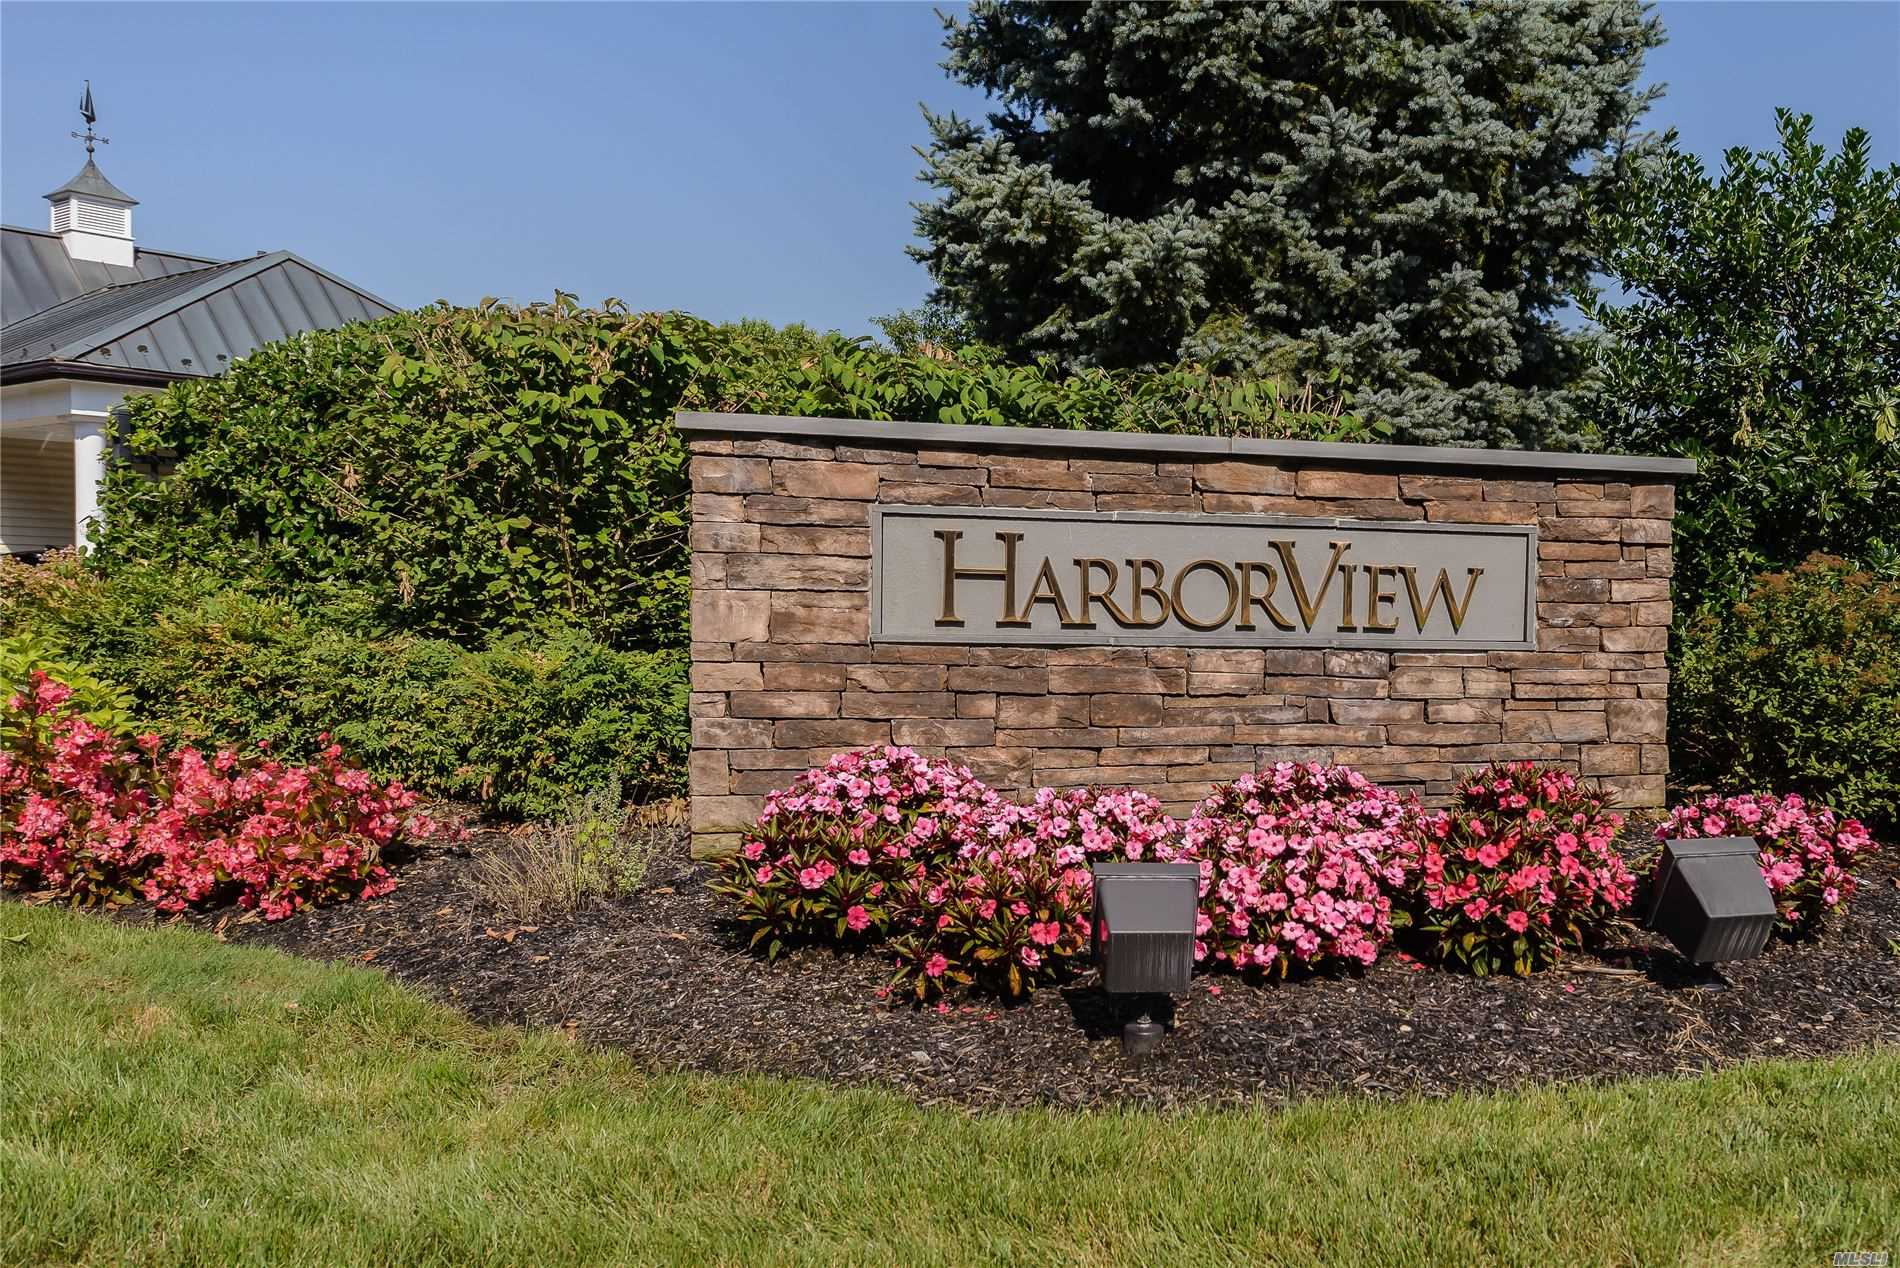 Property for sale at 189 Harbor View Drive, Port Washington NY 11050, Port Washington,  New York 11050